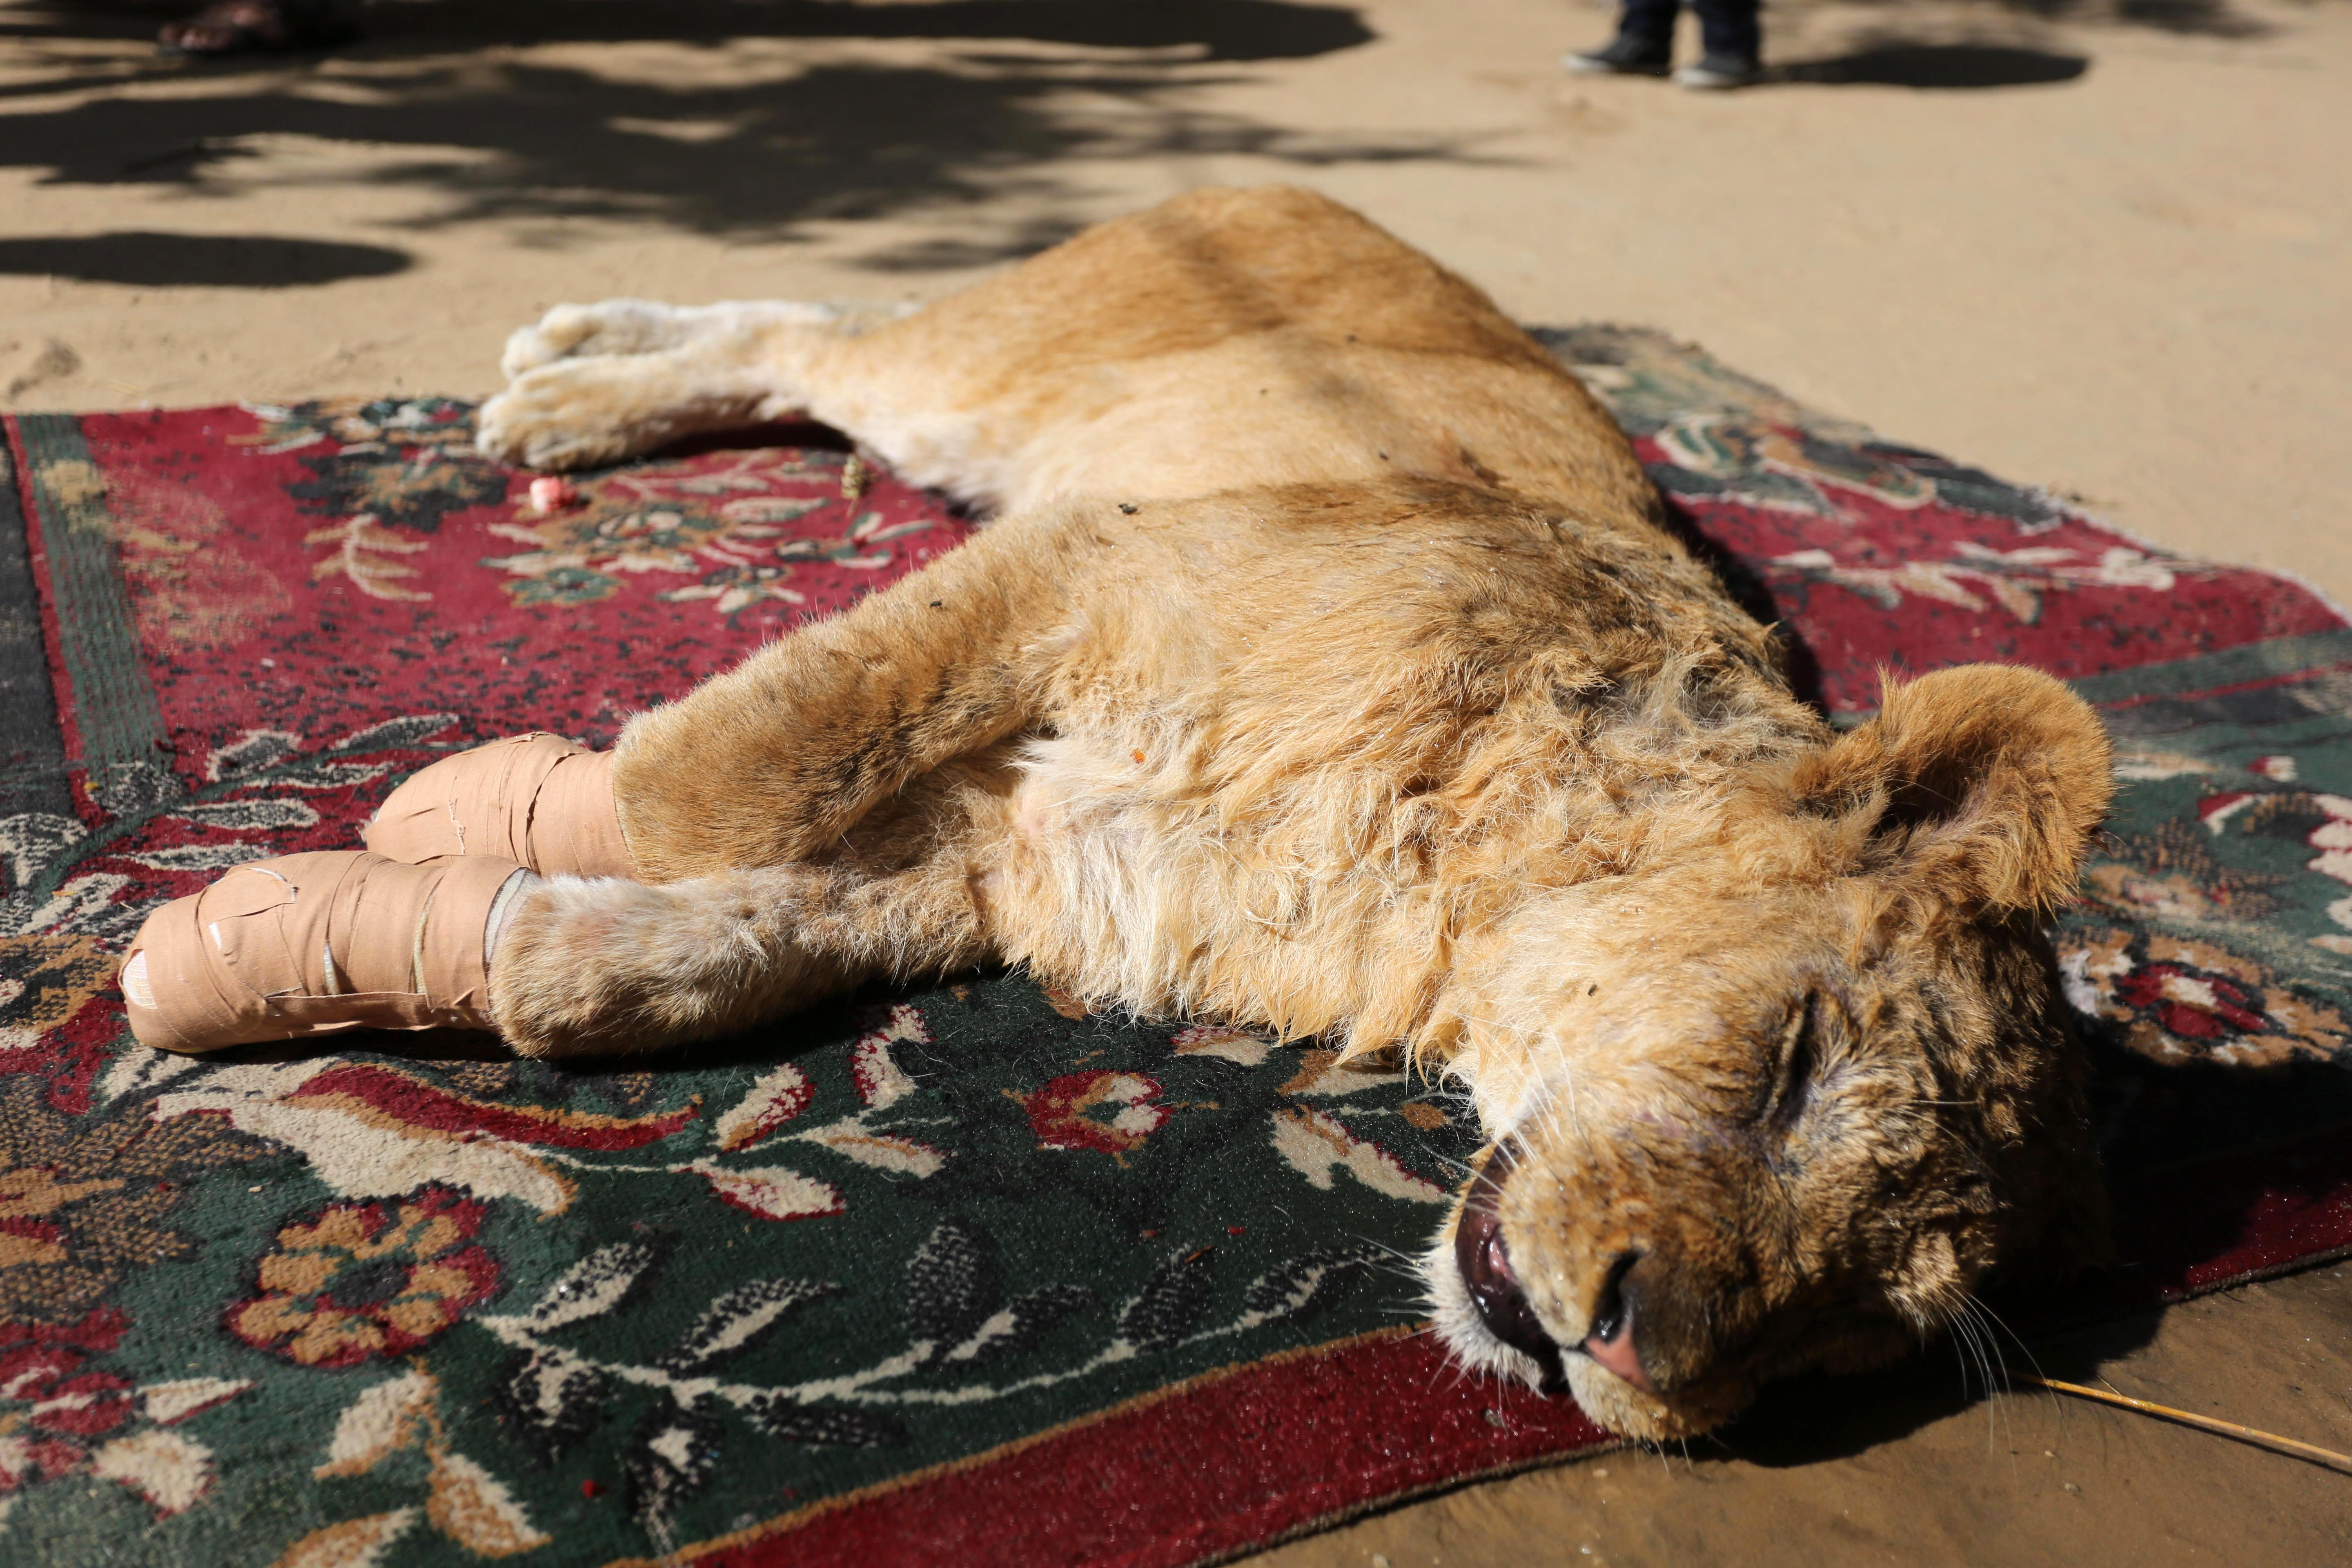 The lioness can be seen lying on the floor with bandages around her front paws. Credit: Shutterstock